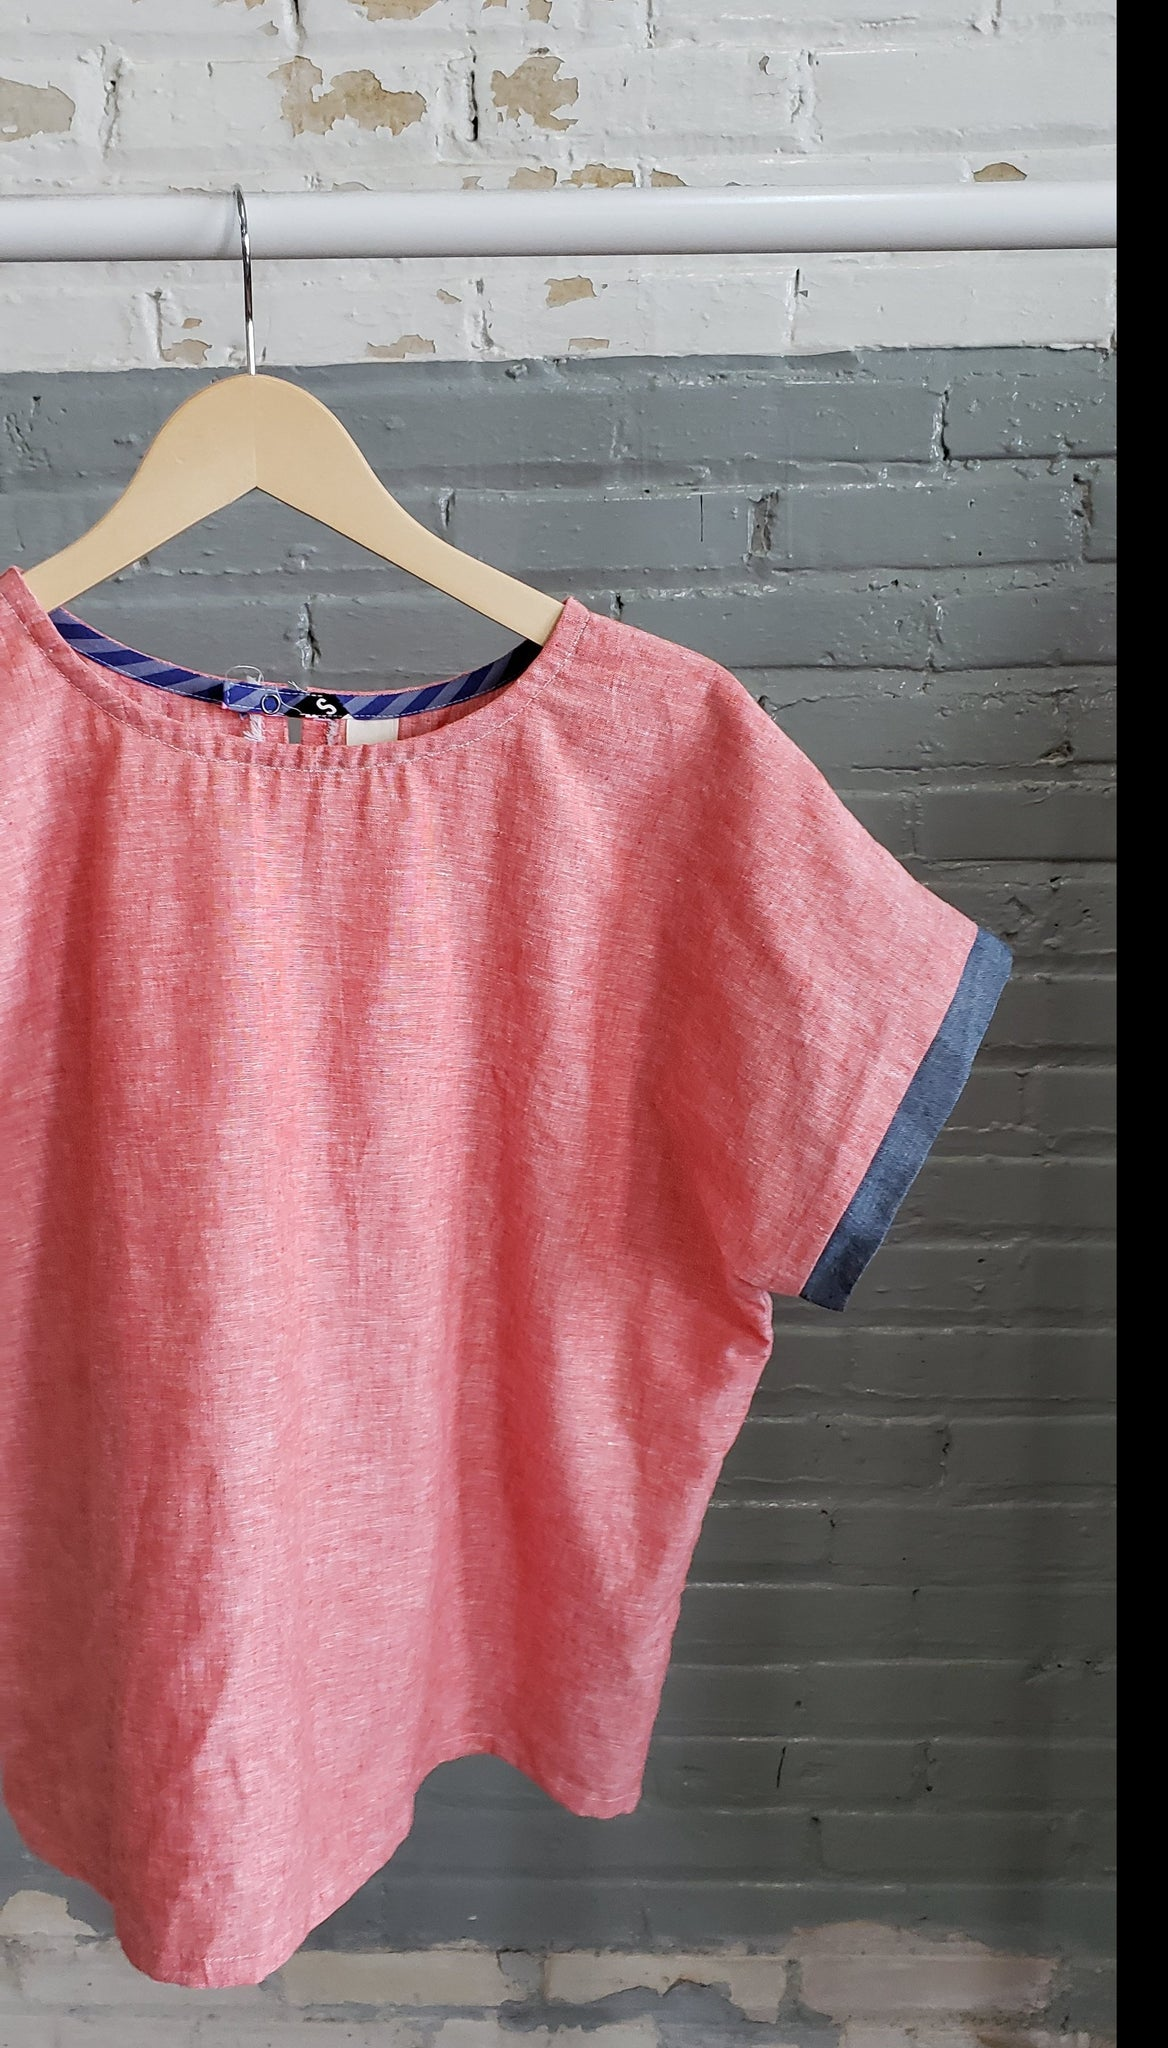 pink orange linen tee shirt blouse hanging on a clothing rack by a brick wall